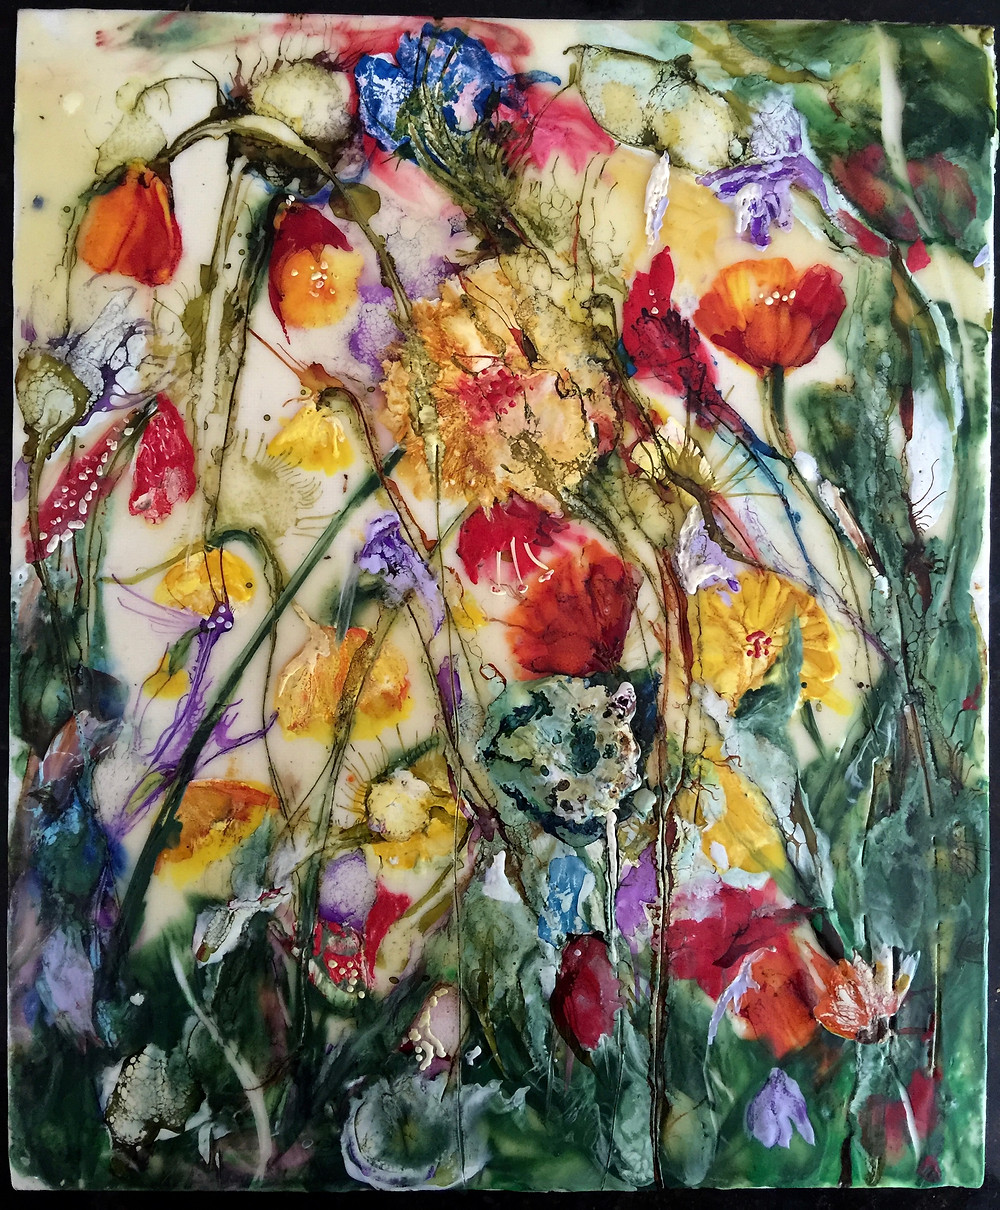 Encaustic wax image of flowers by Melanie Williams